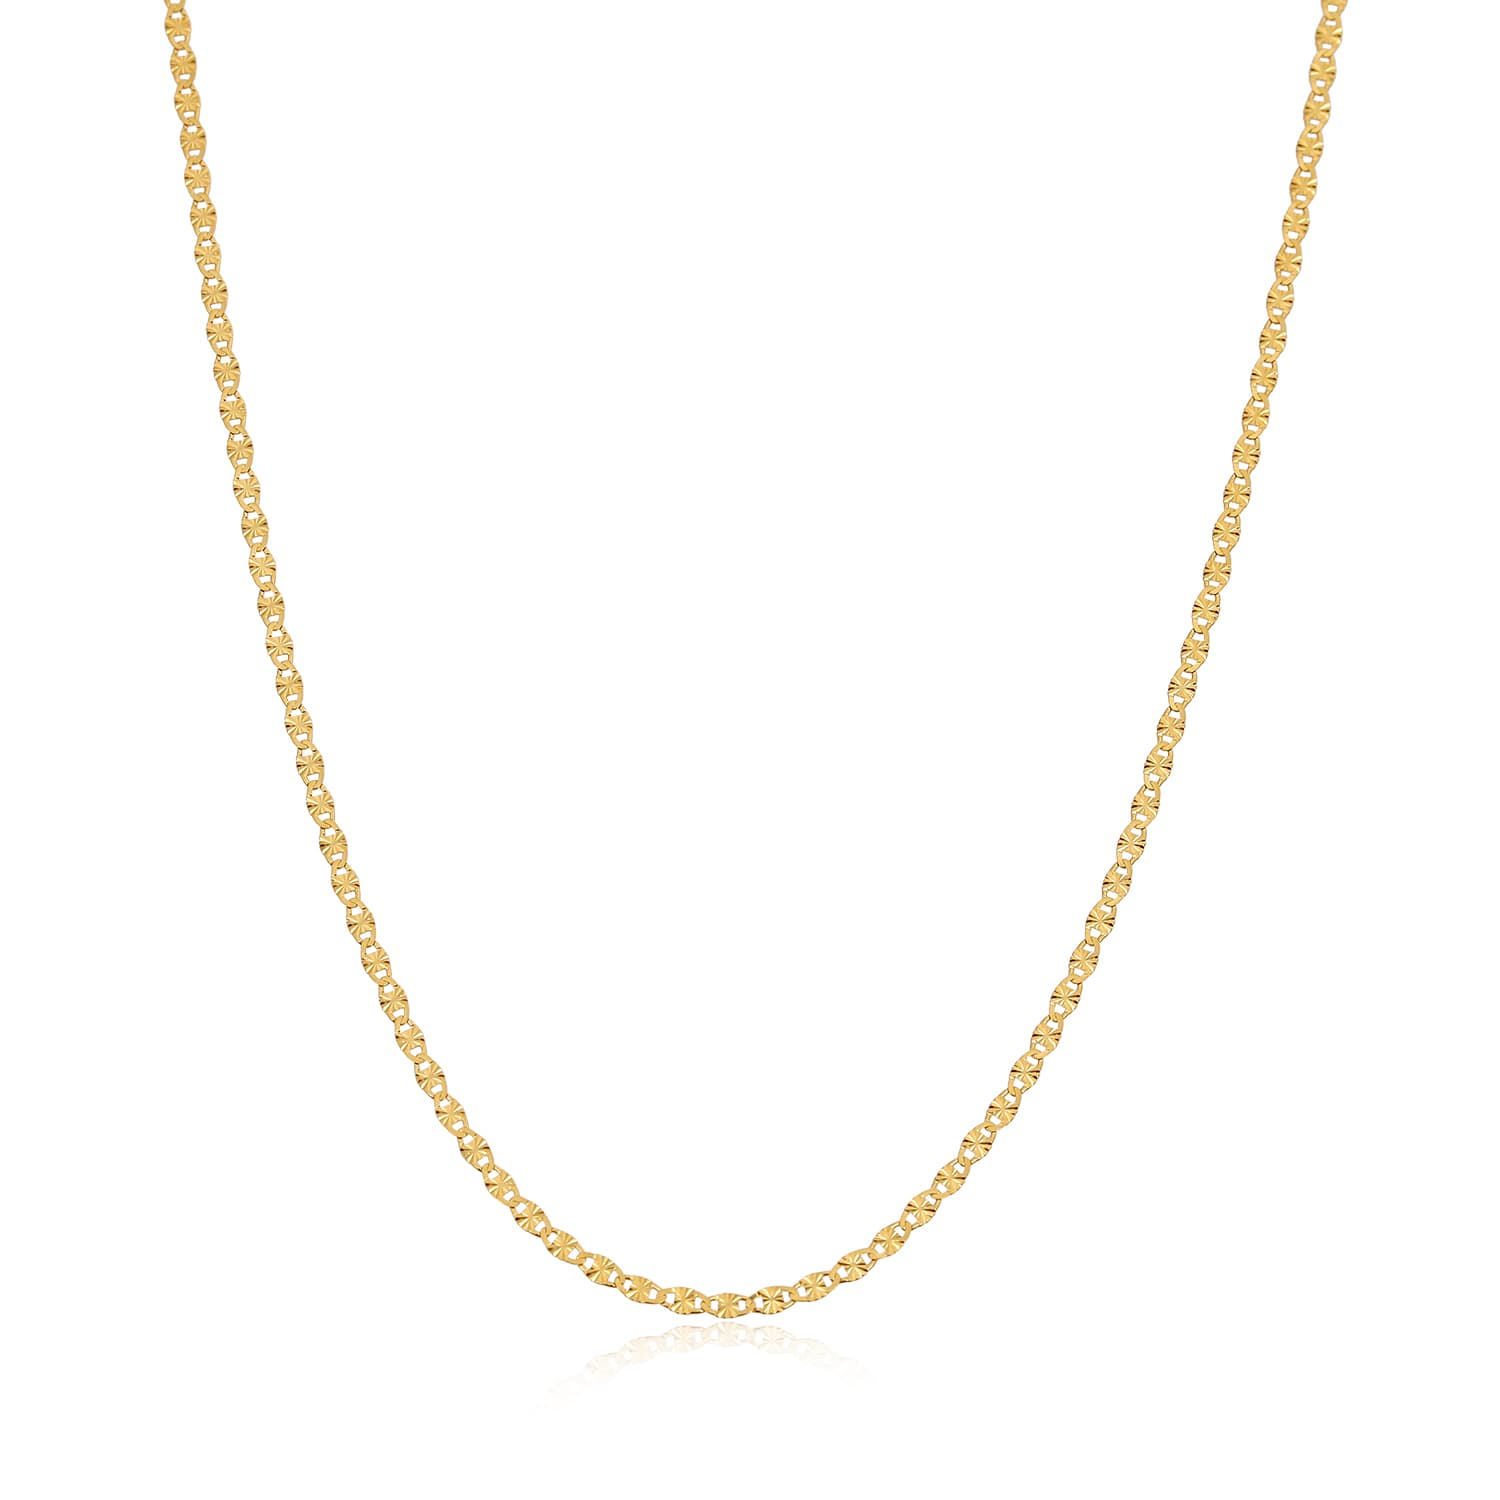 Gold plated chain models